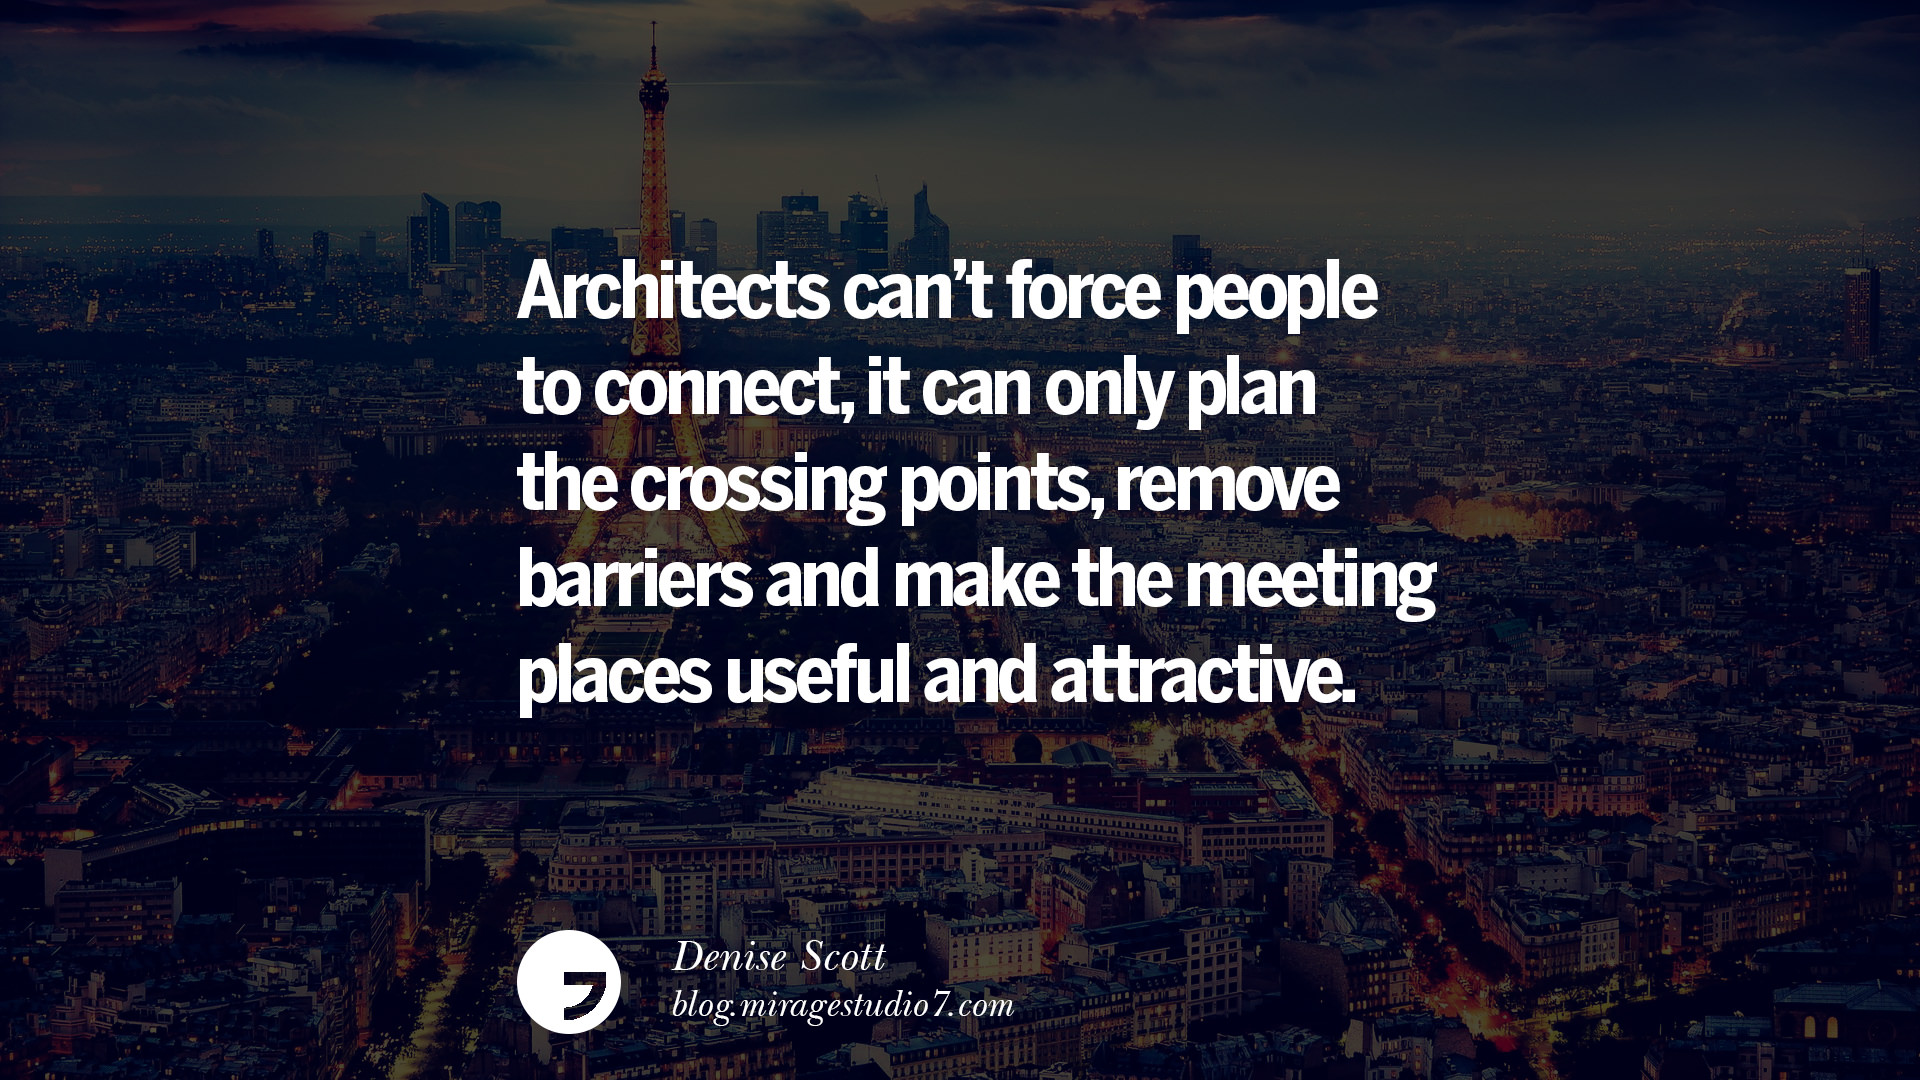 architecture quotes architect architects famous landscape inspirational interior connect force meeting designers barriers plan crossing attractive places remove scott miragestudio7